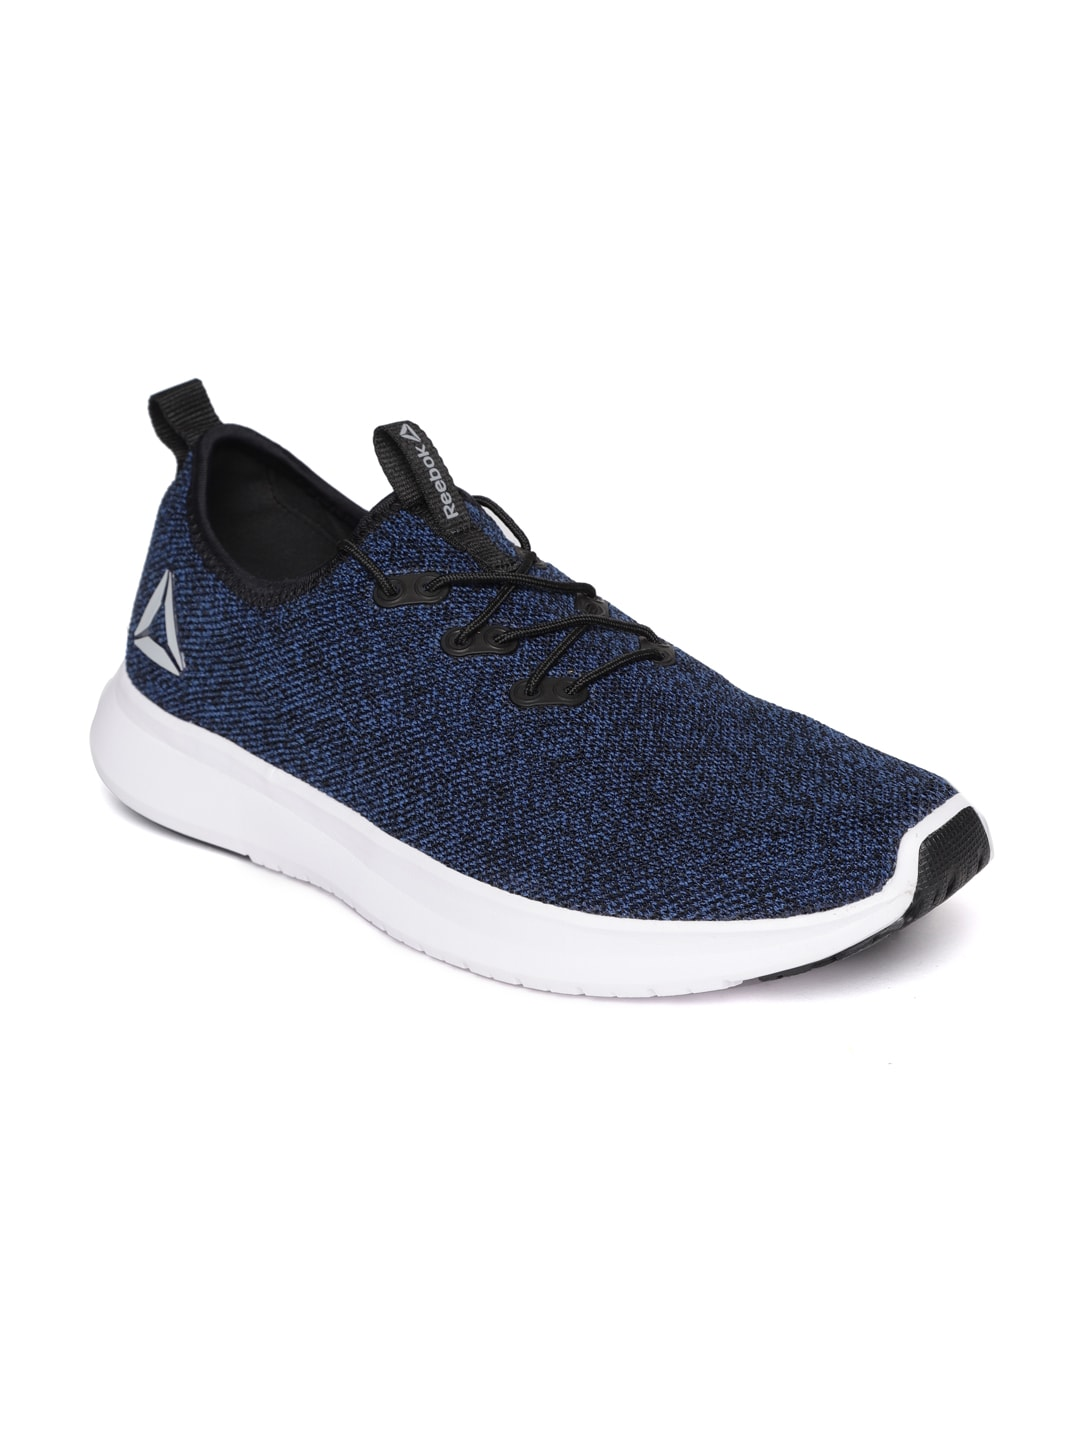 1226e622ab8c Reebok Sports Shoes - Buy Reebok Sports Shoes in India